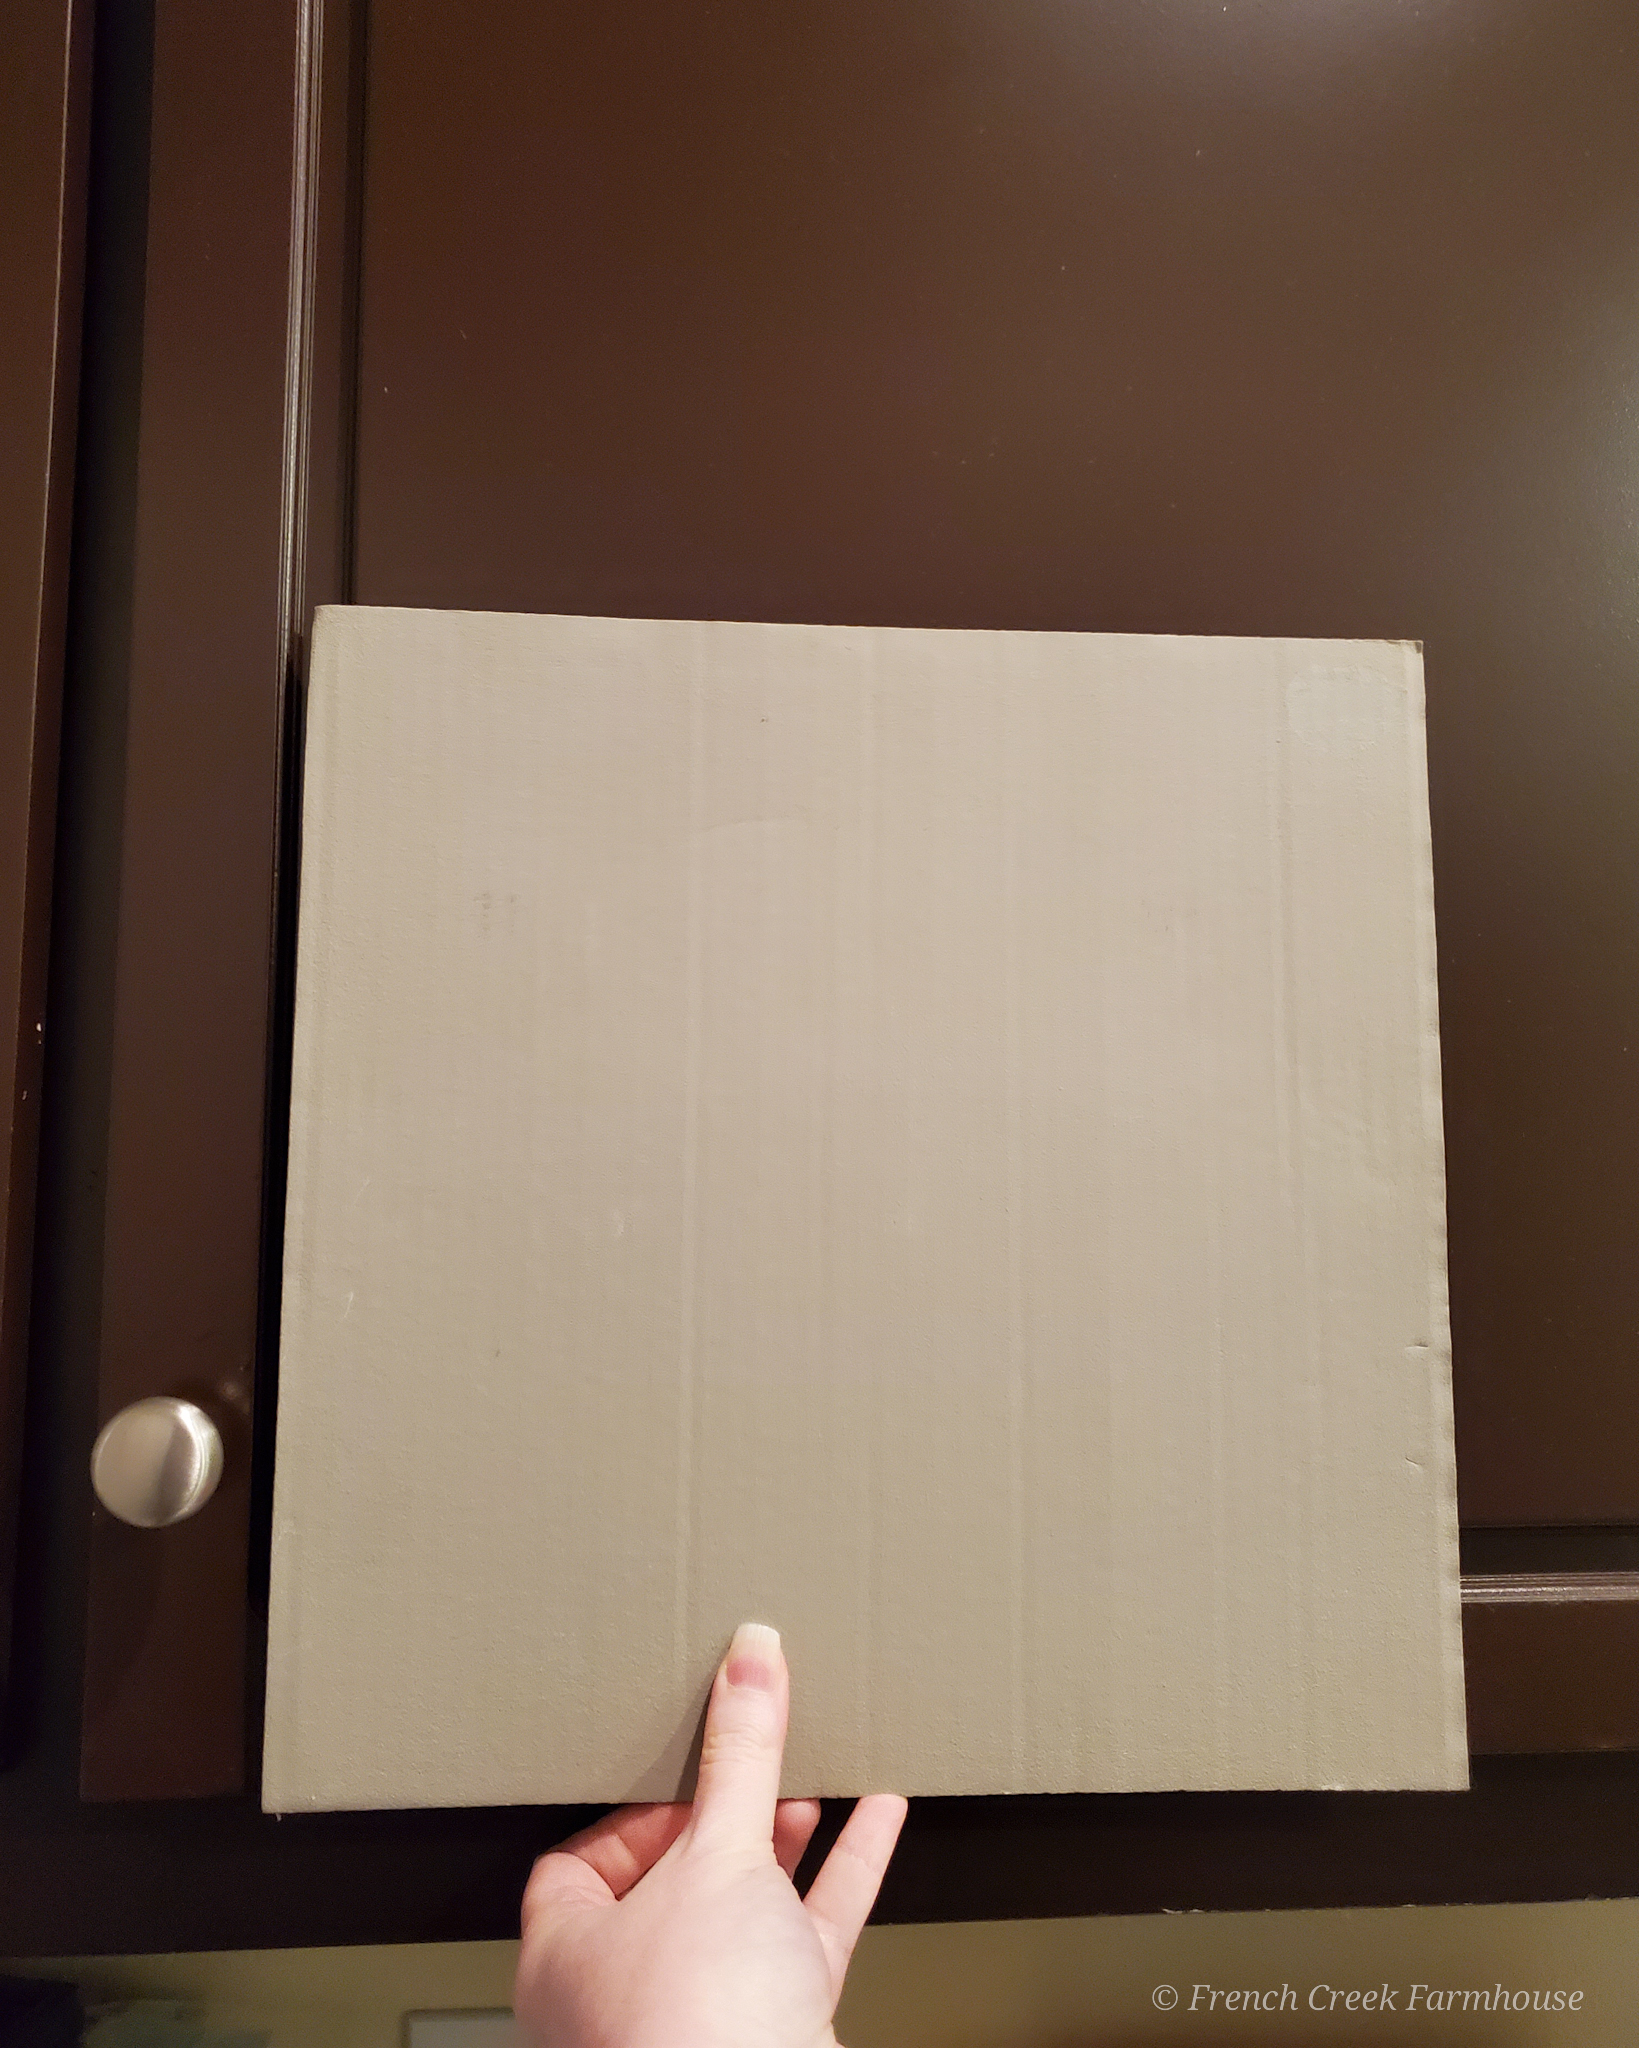 Paint a large swatch of paint on cardboard that can be moved around the room